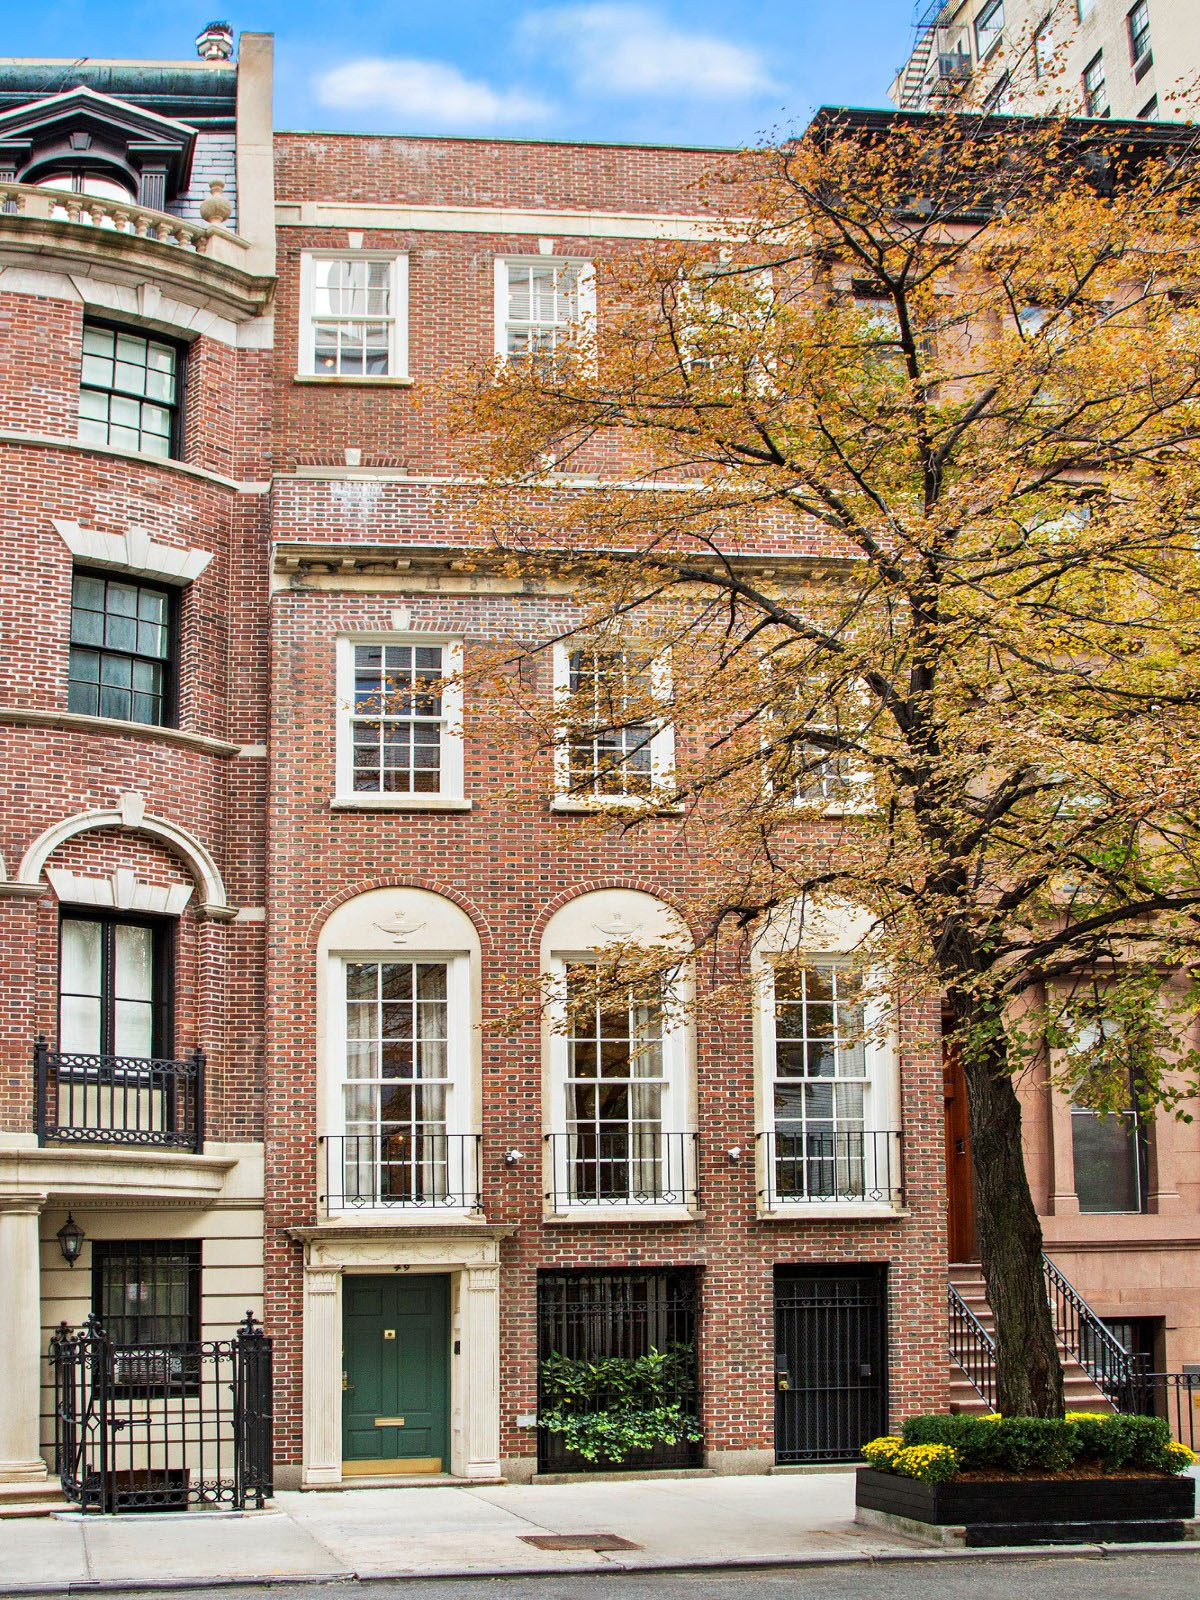 Manhattan Townhouse with Red Brick Façade